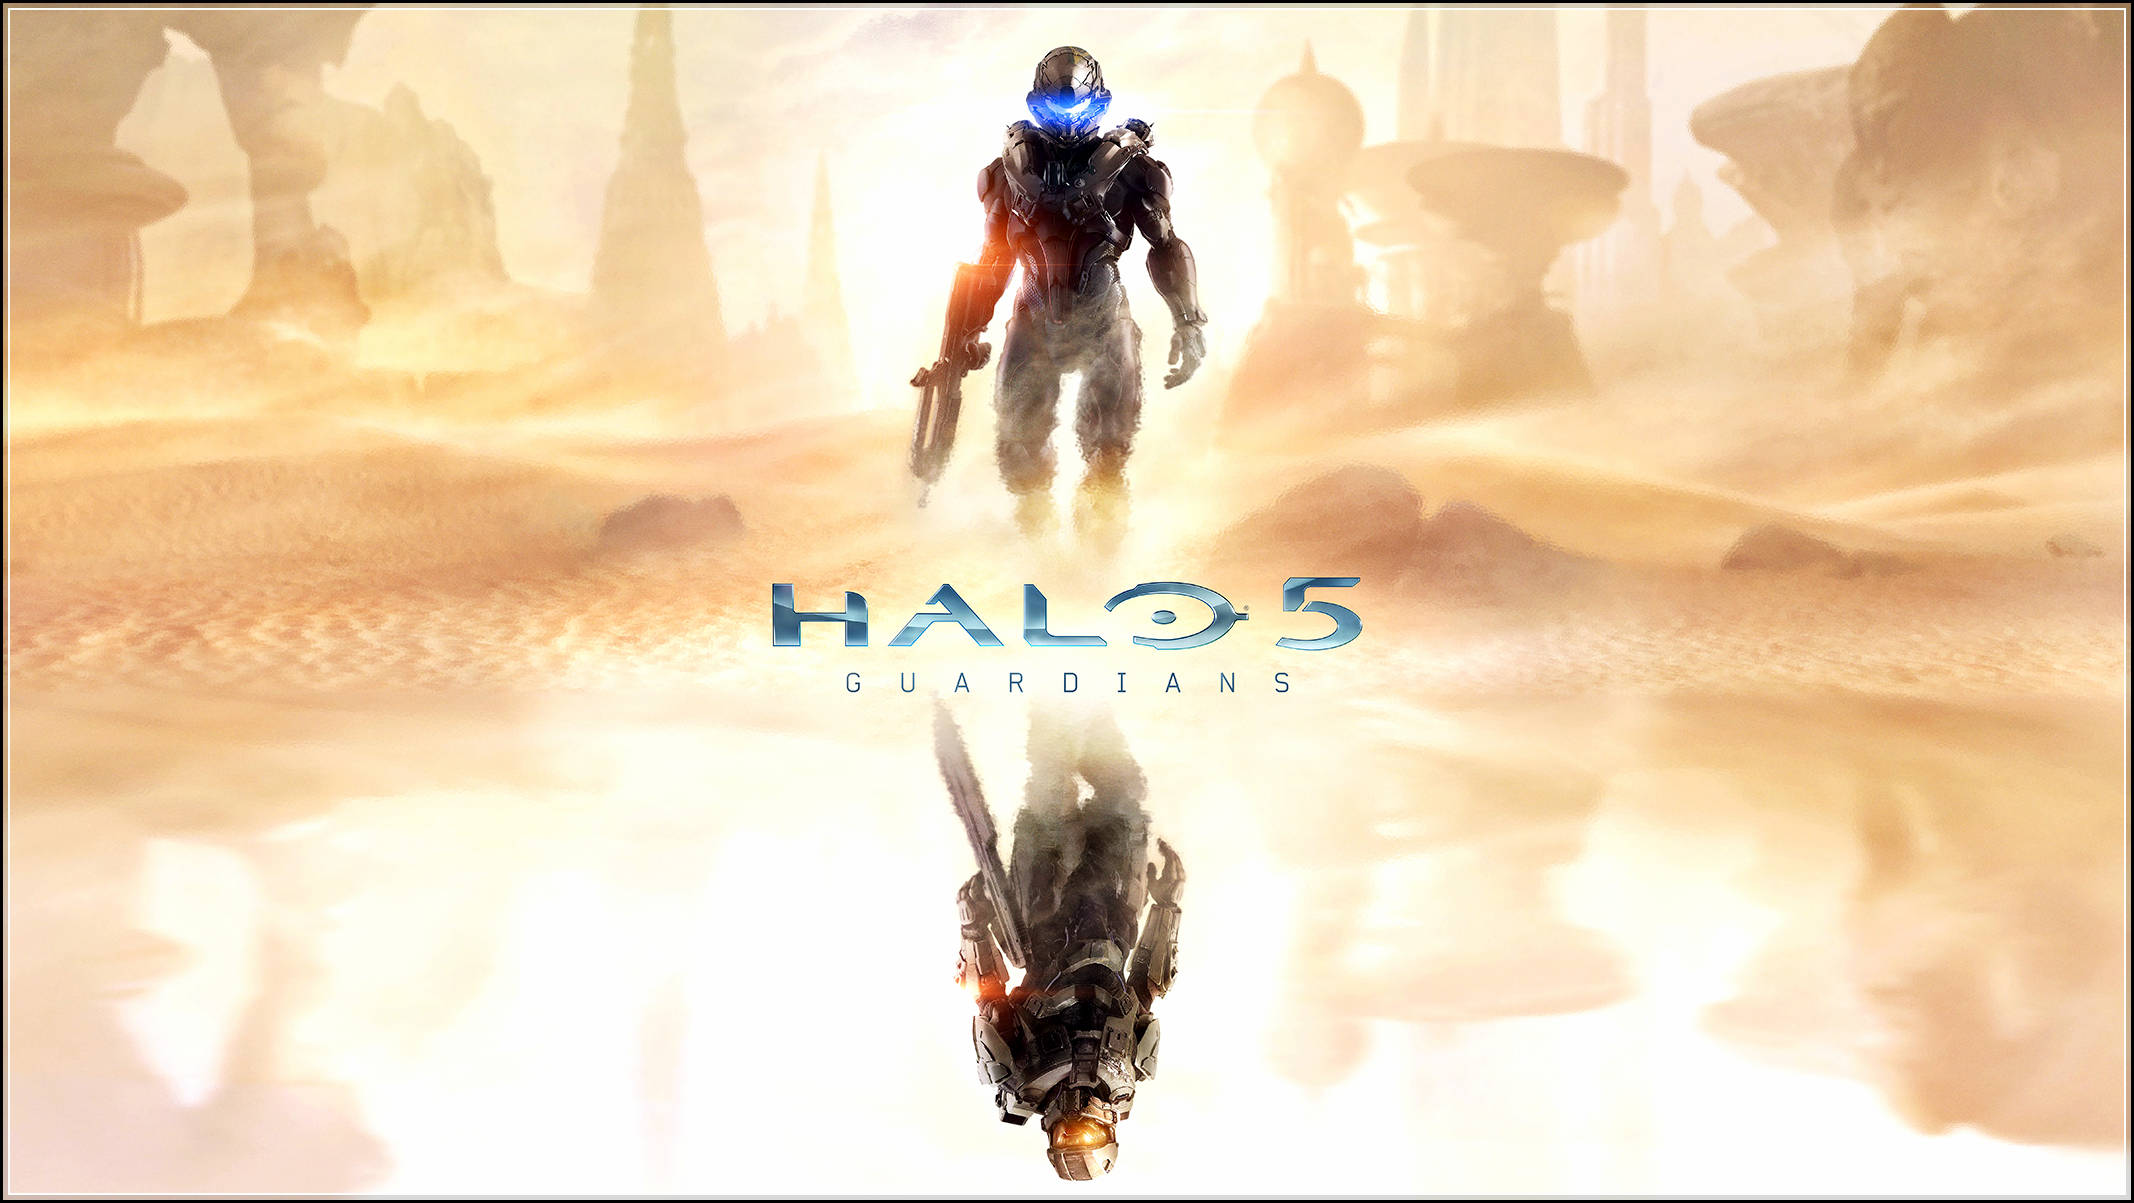 Halo 5 Guardians Video game